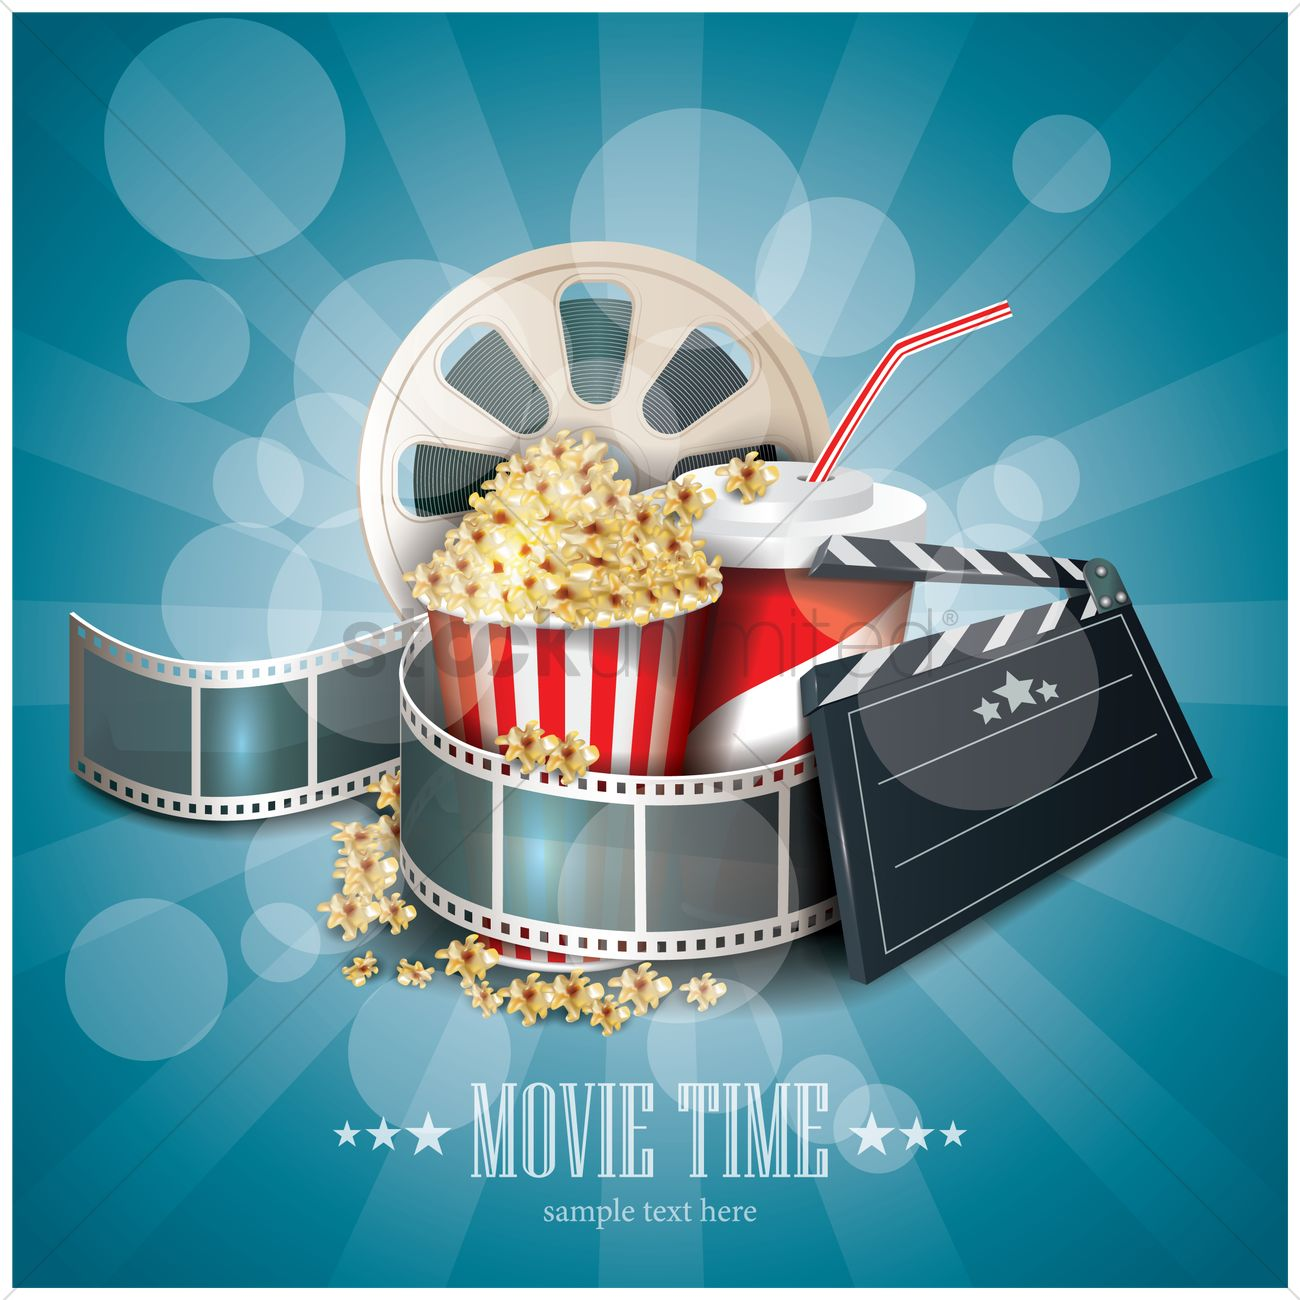 movie time wallpaper vector image 1804978 stockunlimited